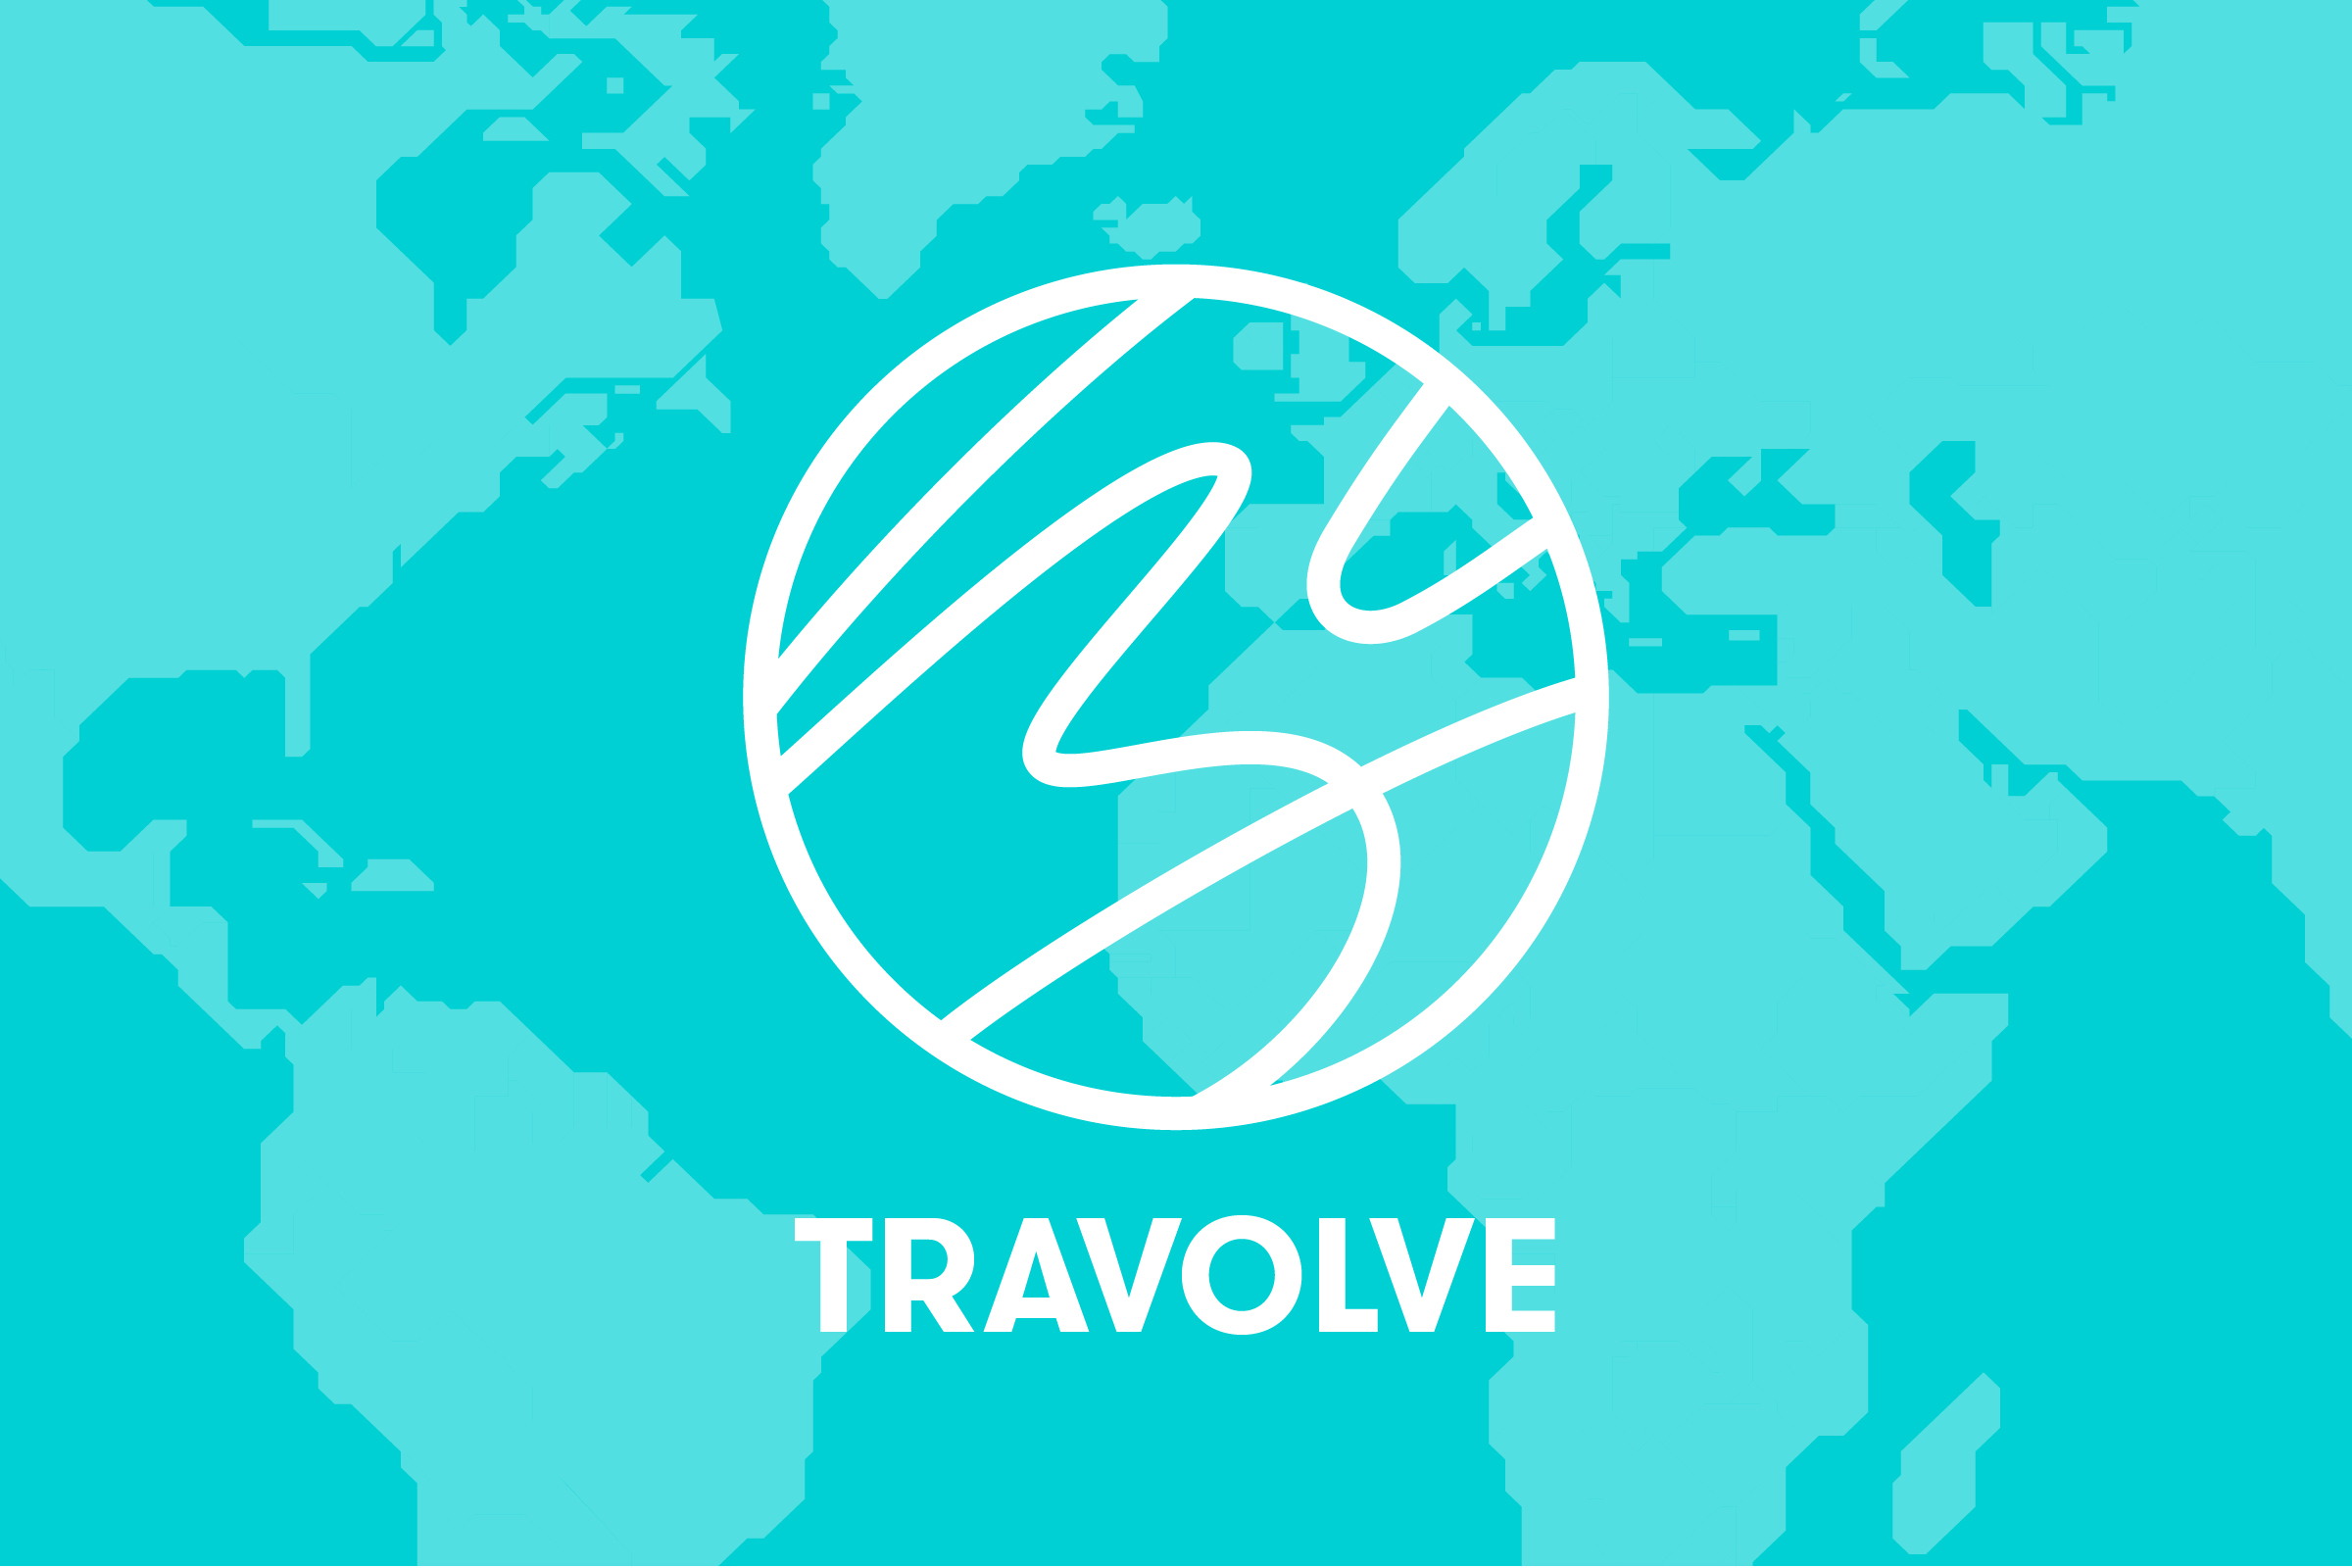 travolve with map_01_Artboard 1